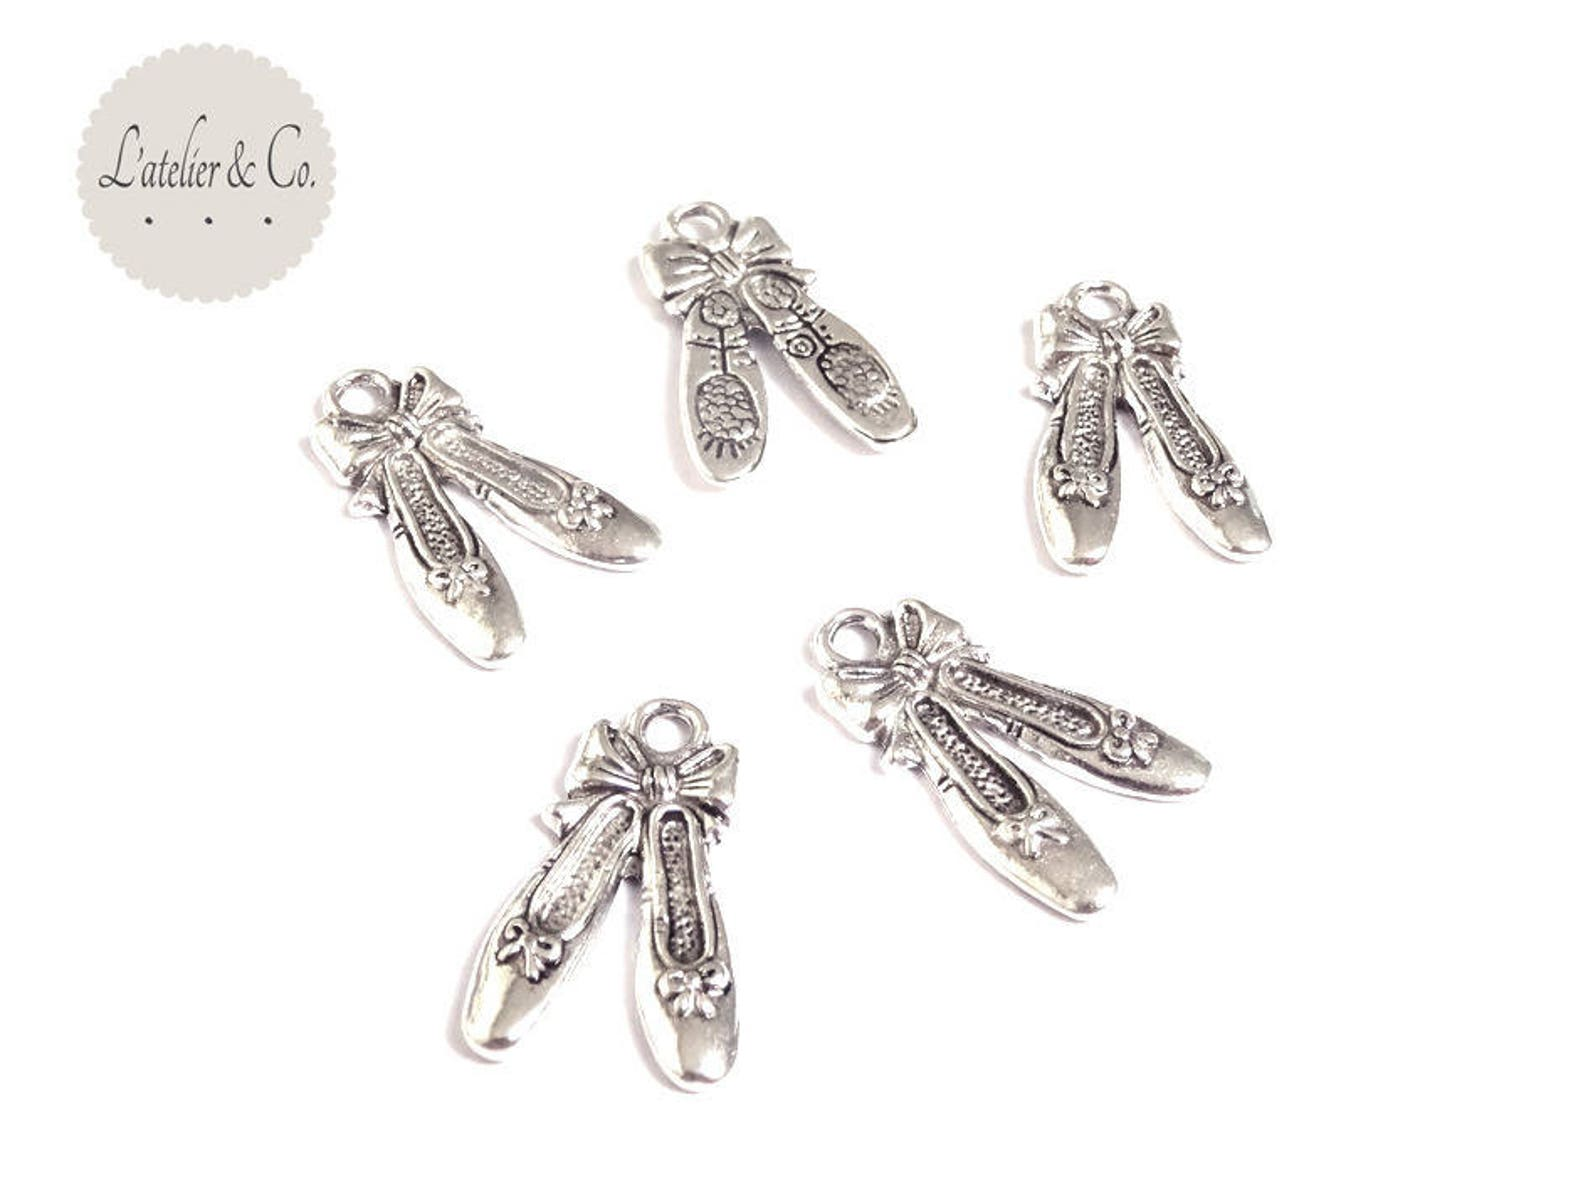 10 21x6mm silver dancer a13 beauty ballet shoe charms